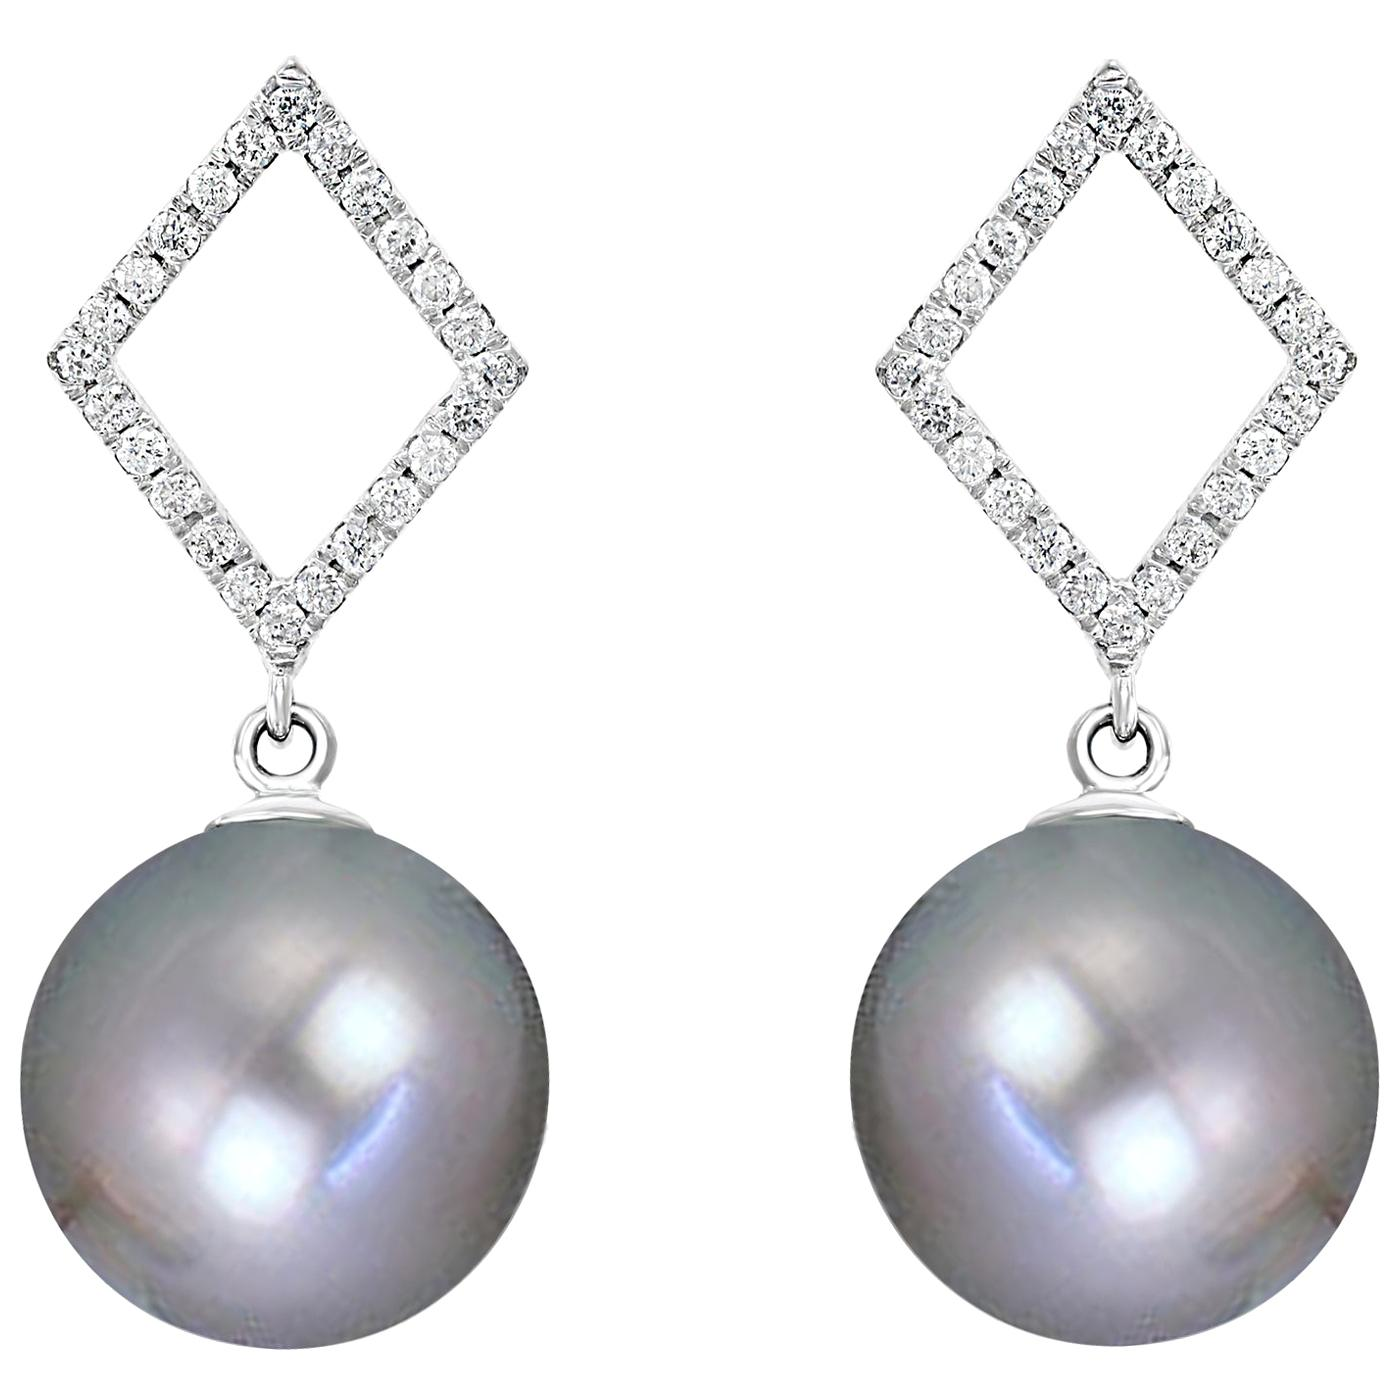 Tahitian Grey Cultured Pearl and Diamond Earrings with 14 Karat White Gold